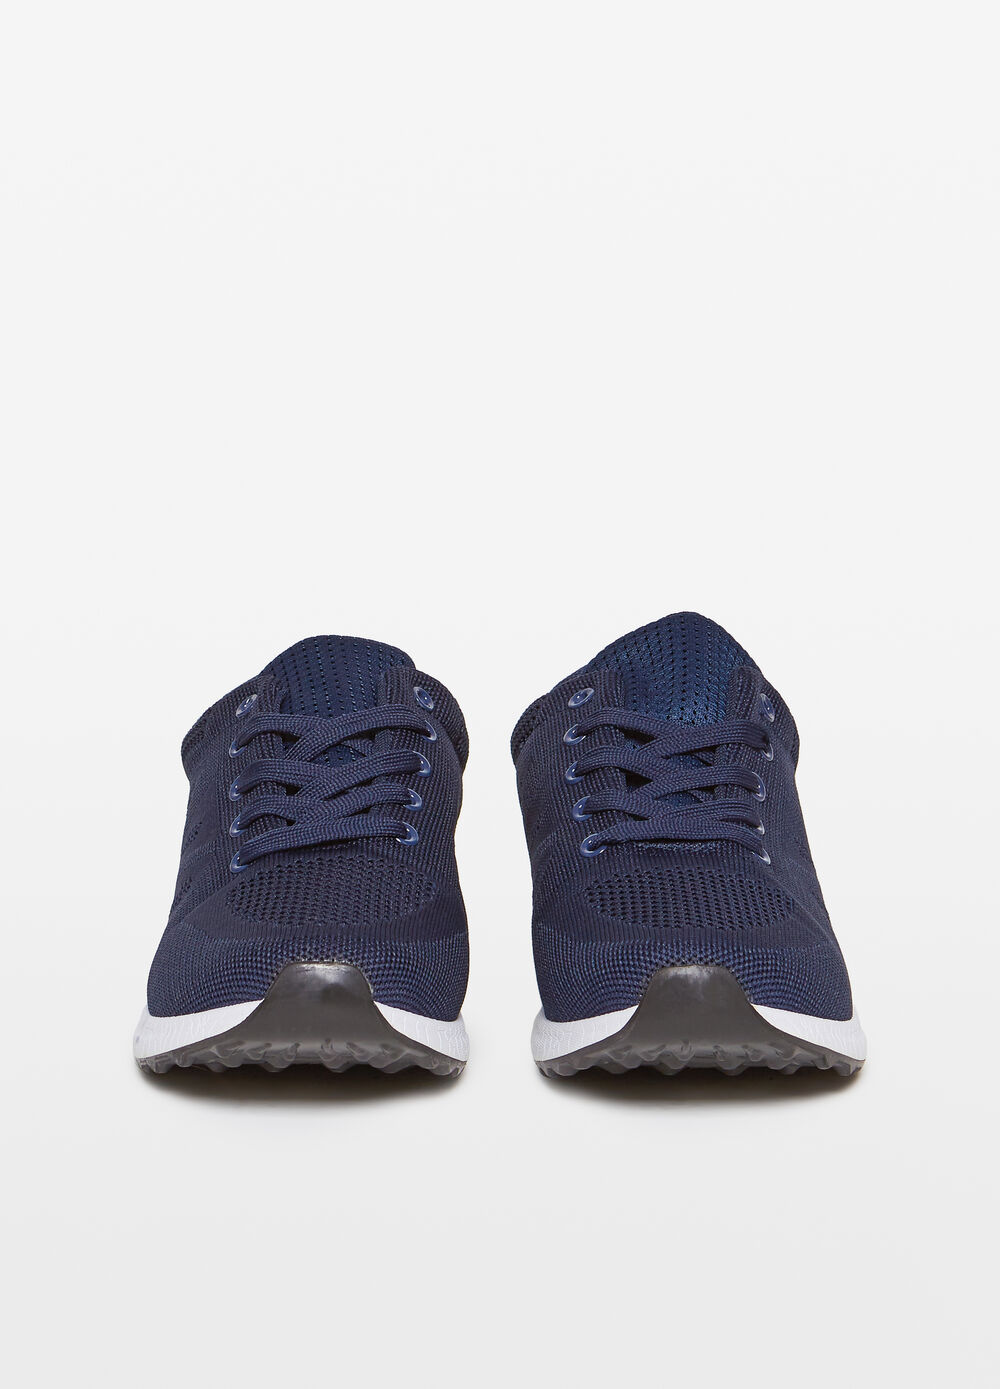 Sneakers with mesh upper